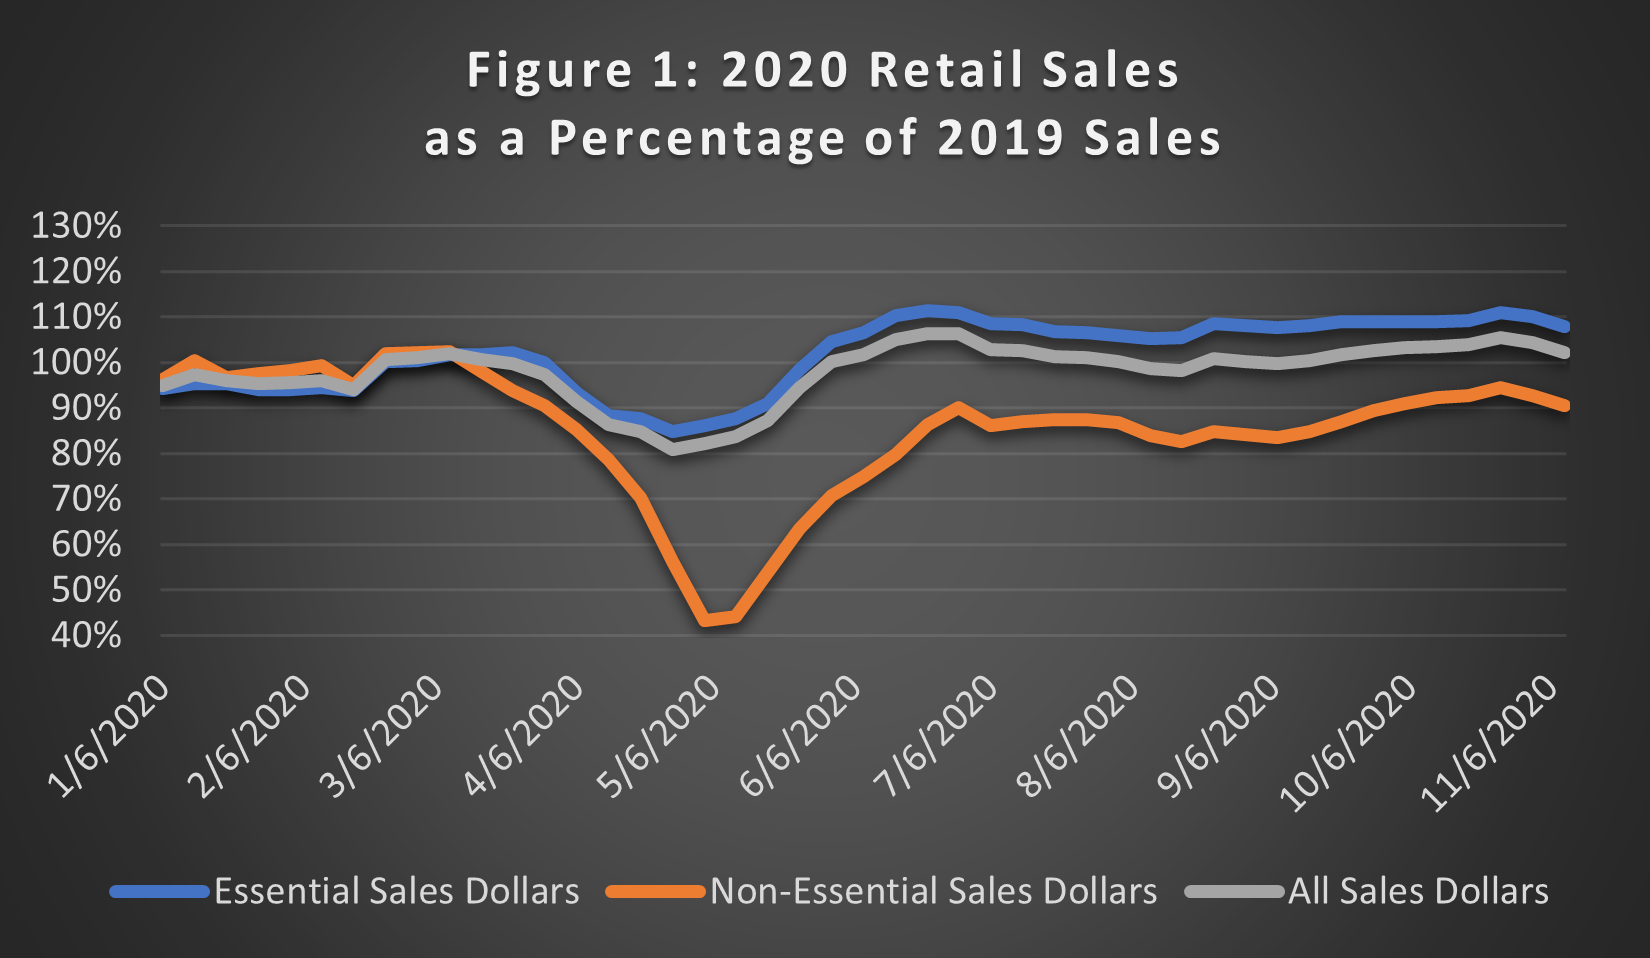 2020 the year ecommerce saved retail operations, figure 1: 2020 Retail Sales as a Percentage of 2019 Sales